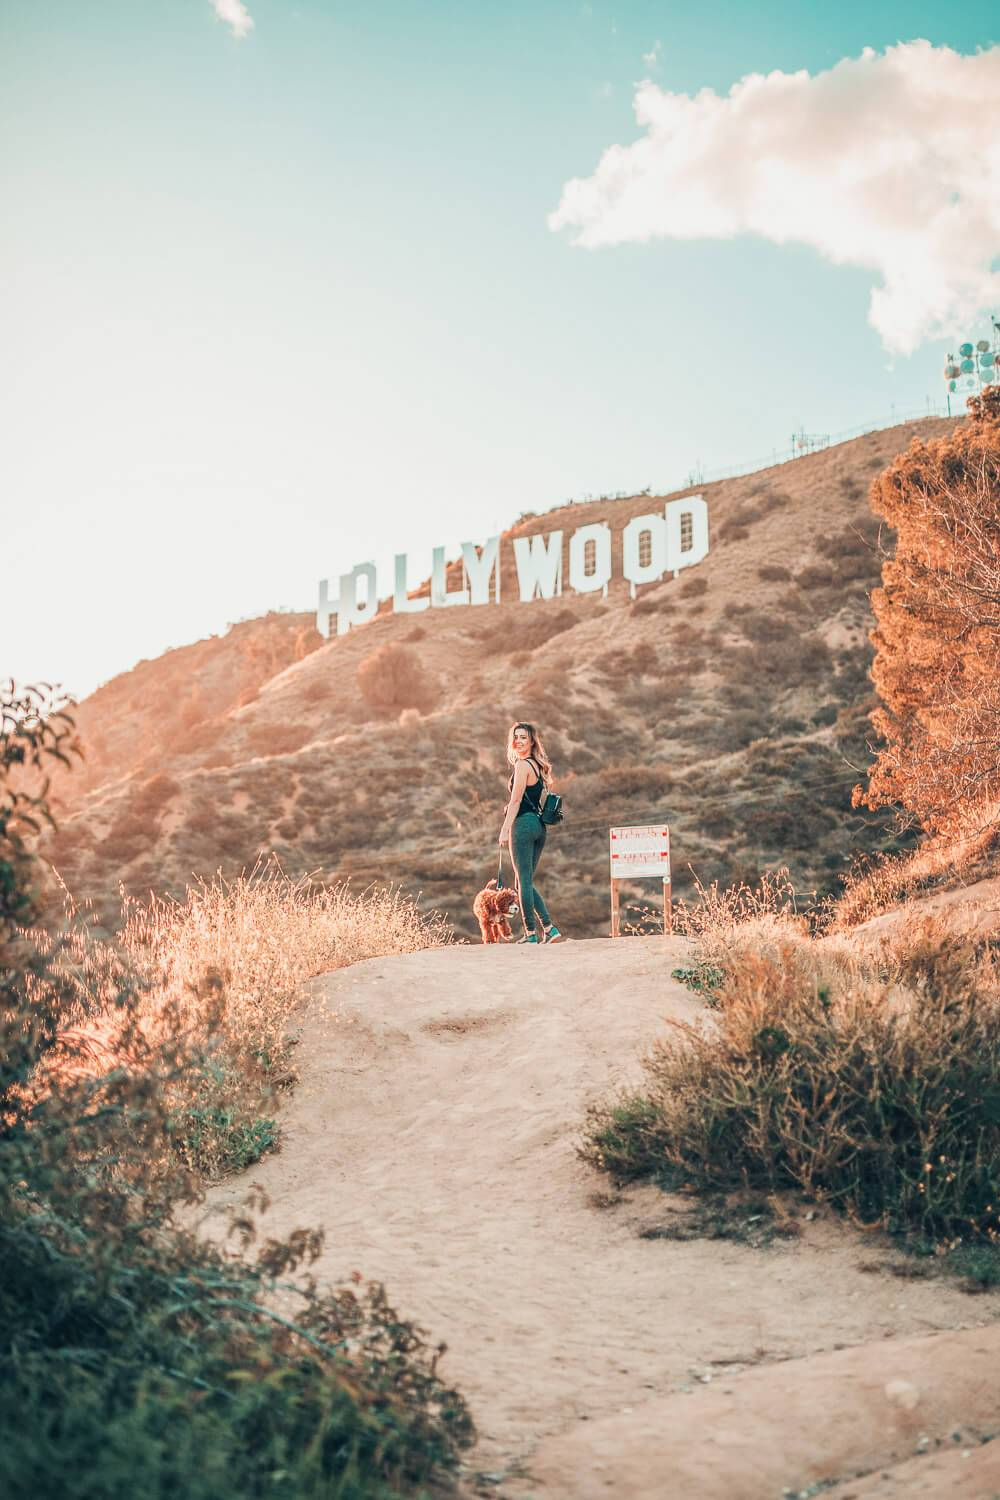 Hiking up to the Hollywood sign is one of the best things you can do in Los Angeles. In fact, it's one of the most fun things to do in LA at night, too.